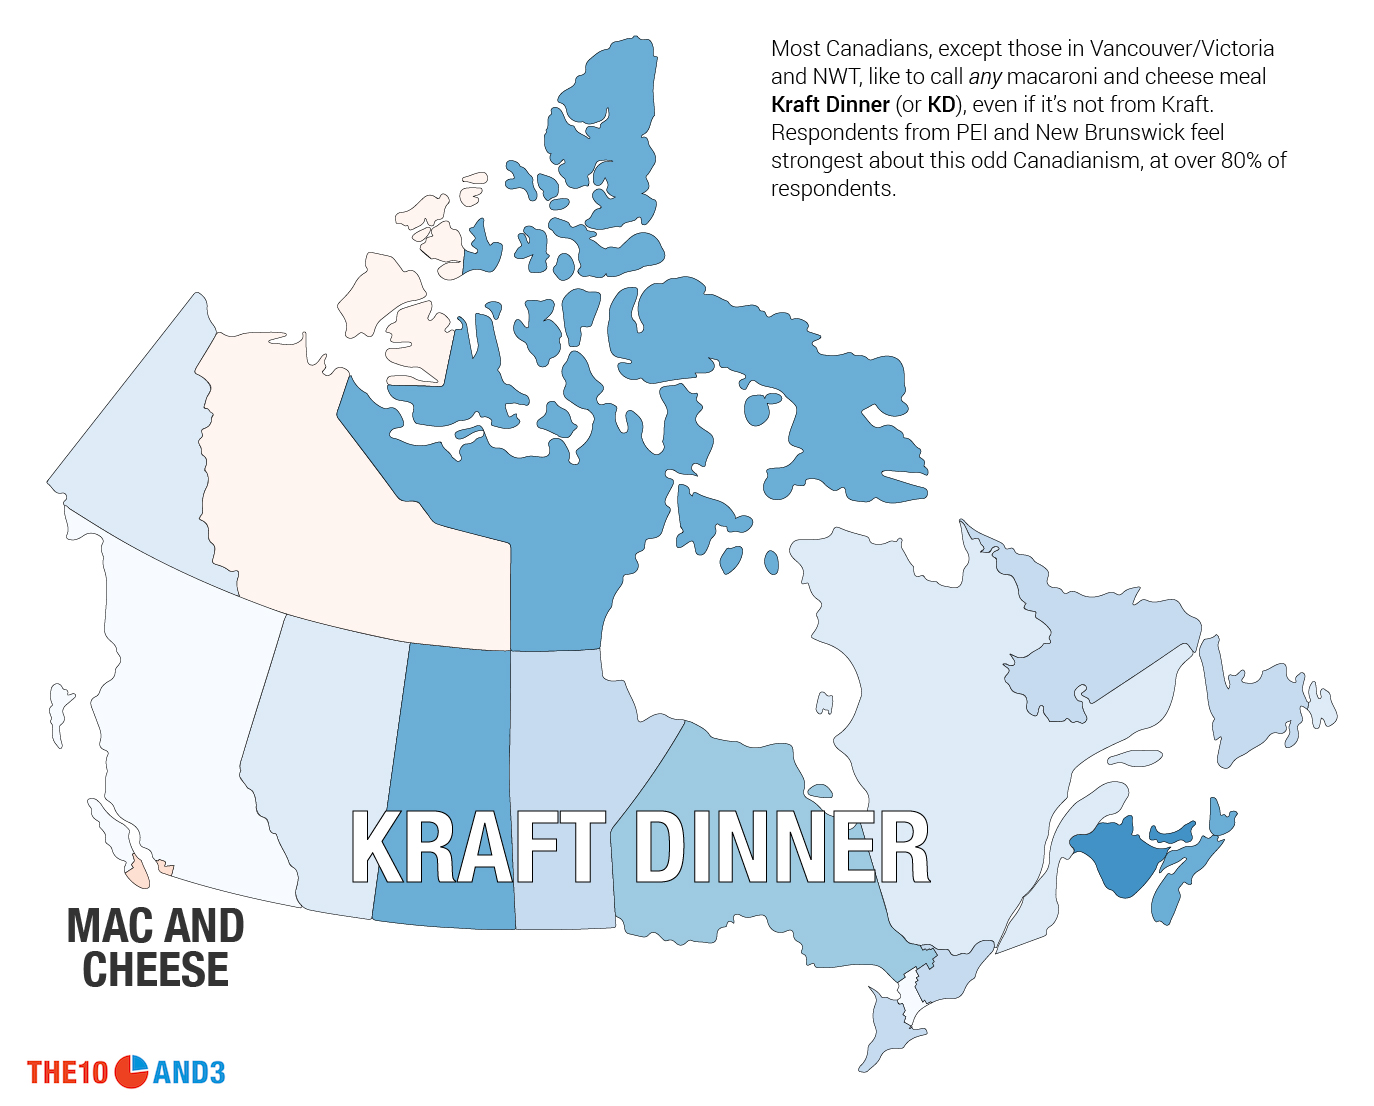 Kraft Dinner vs. Macaroni and Cheese